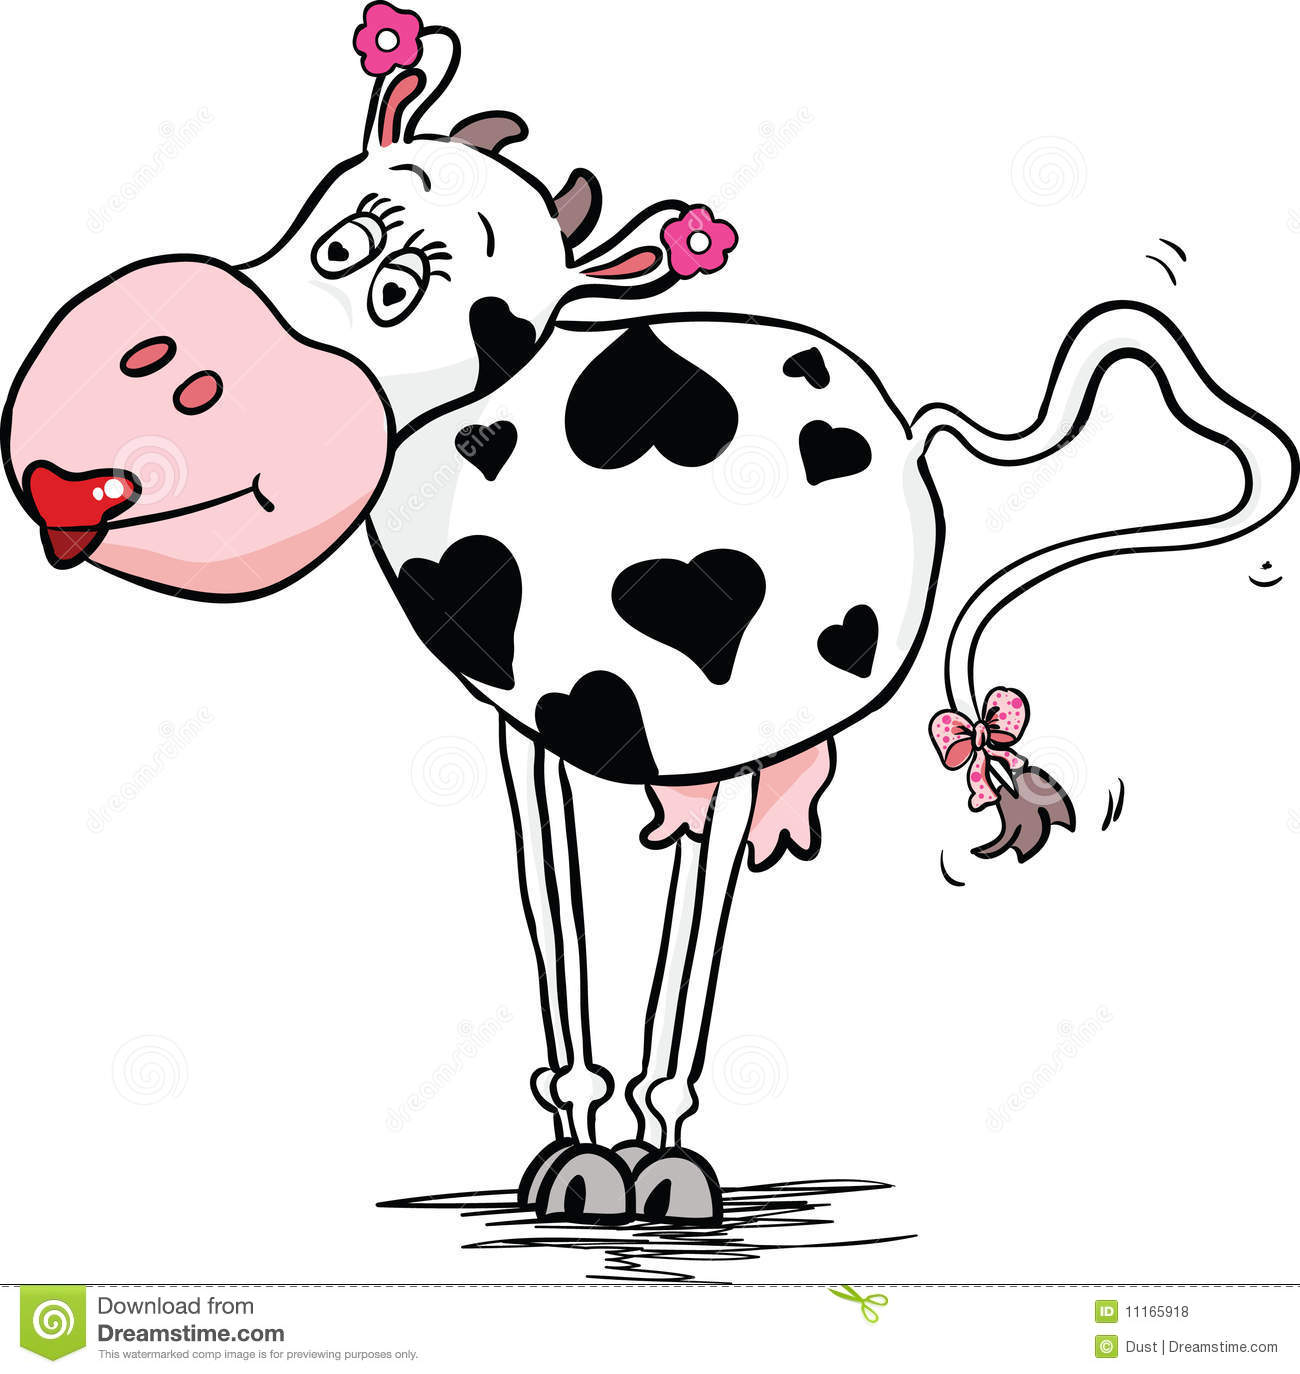 Cute baby cow cartoon Royalty Free Vector Image |Cute Animated Cows In Love